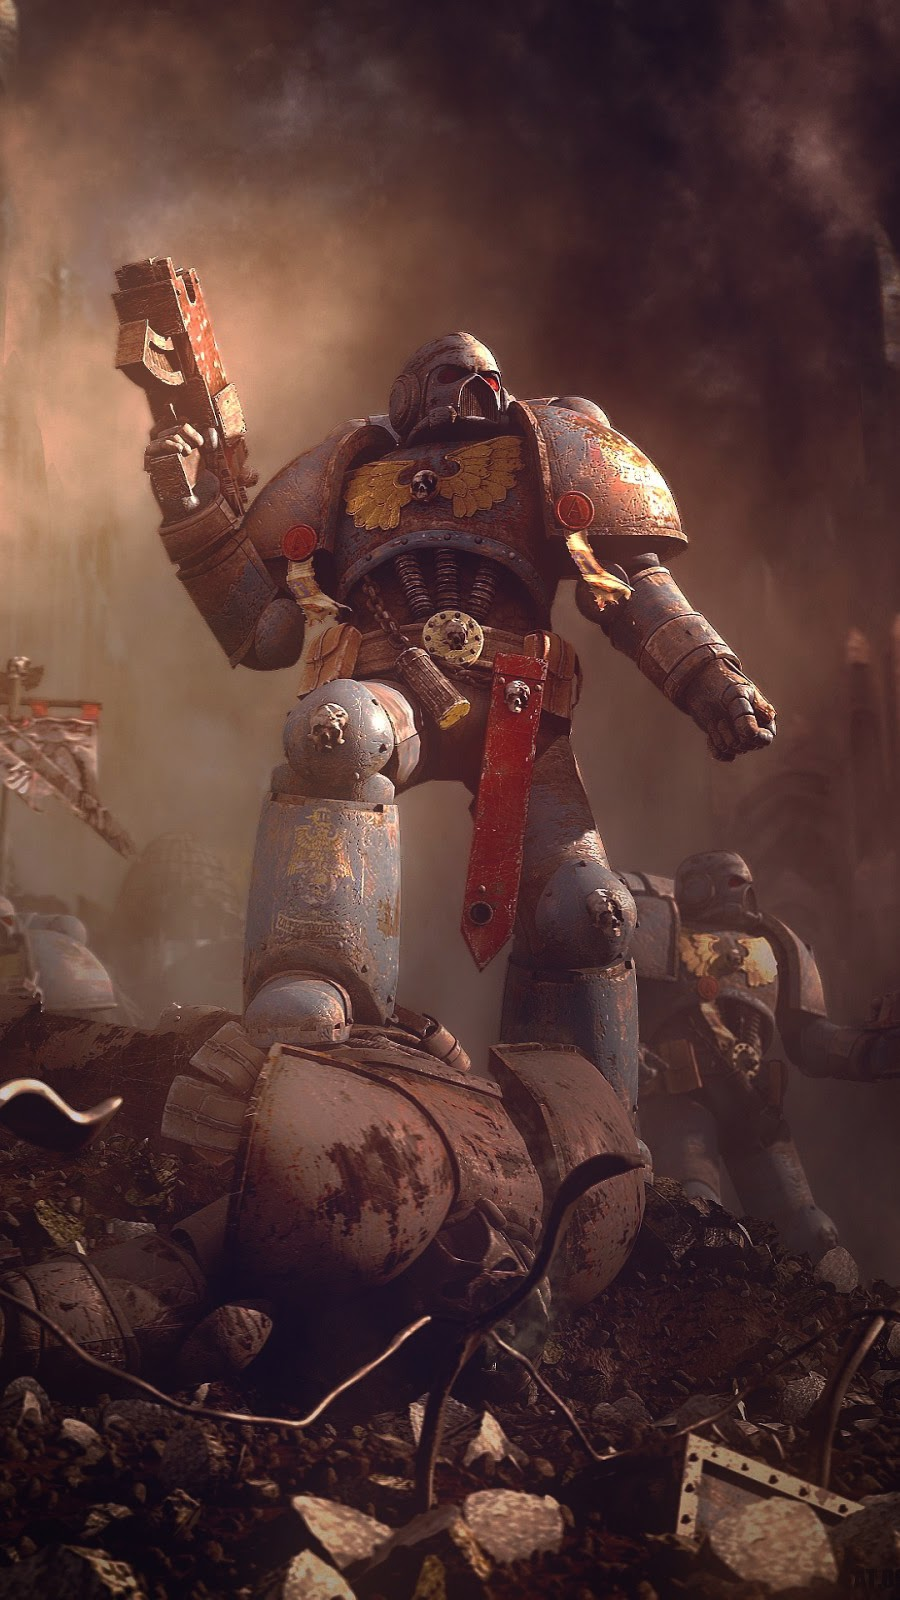 Robot warrior wallpaper 1080x1920